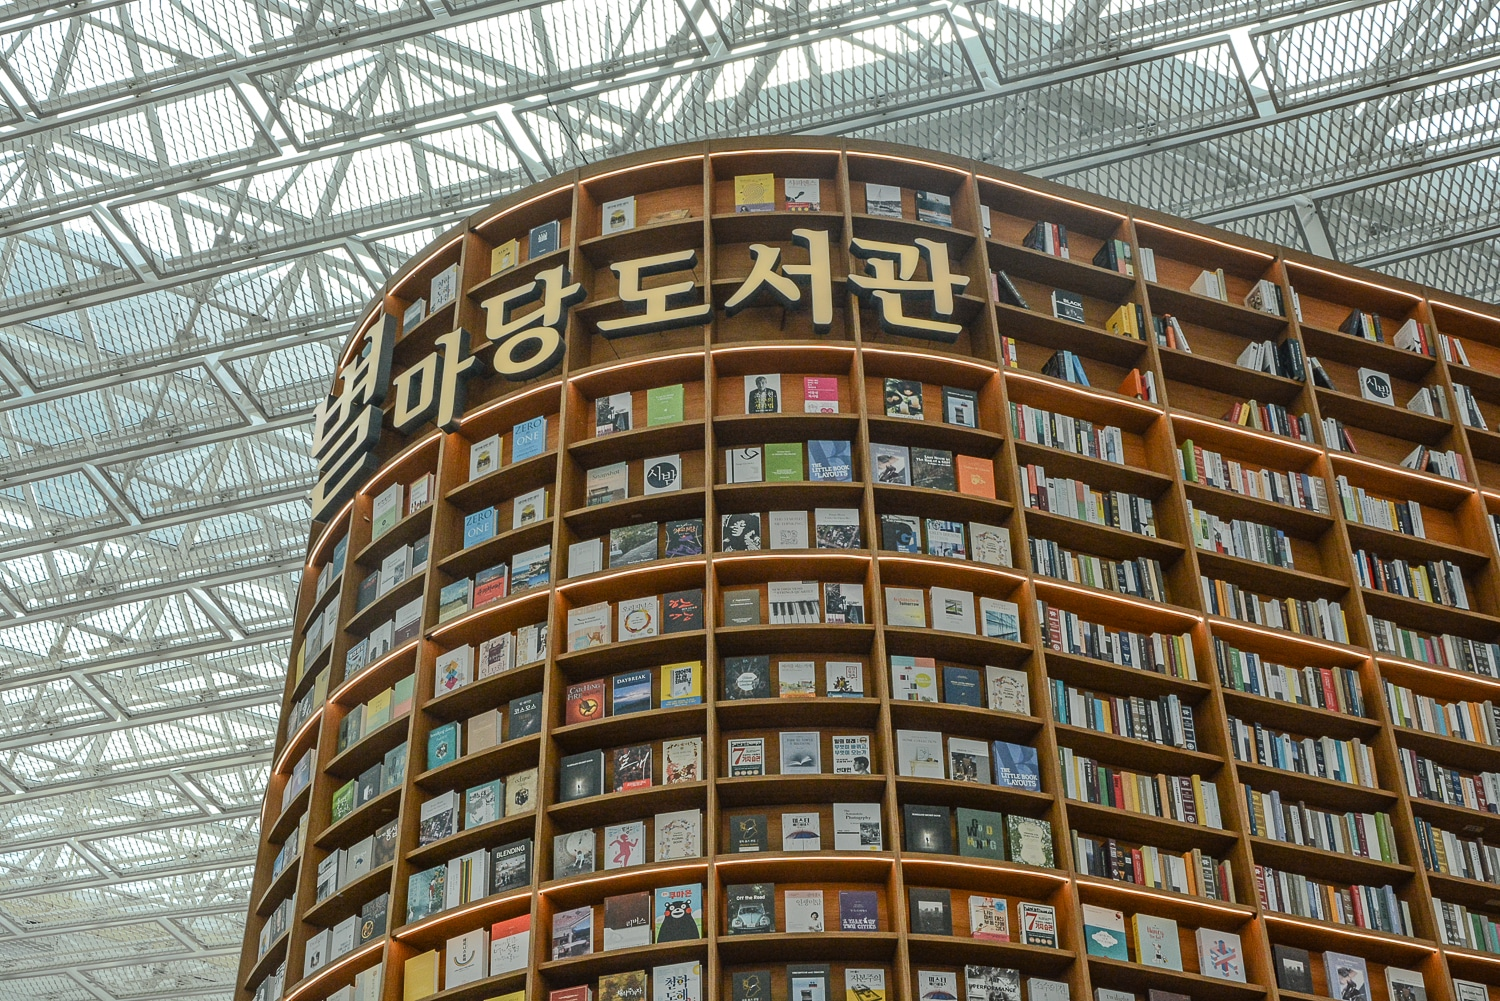 Seoul Tipps und Sightseeing in Seoul: 12 Highlights in Koreas Hauptstadt - Coex Mall Bandi Lubnis Library